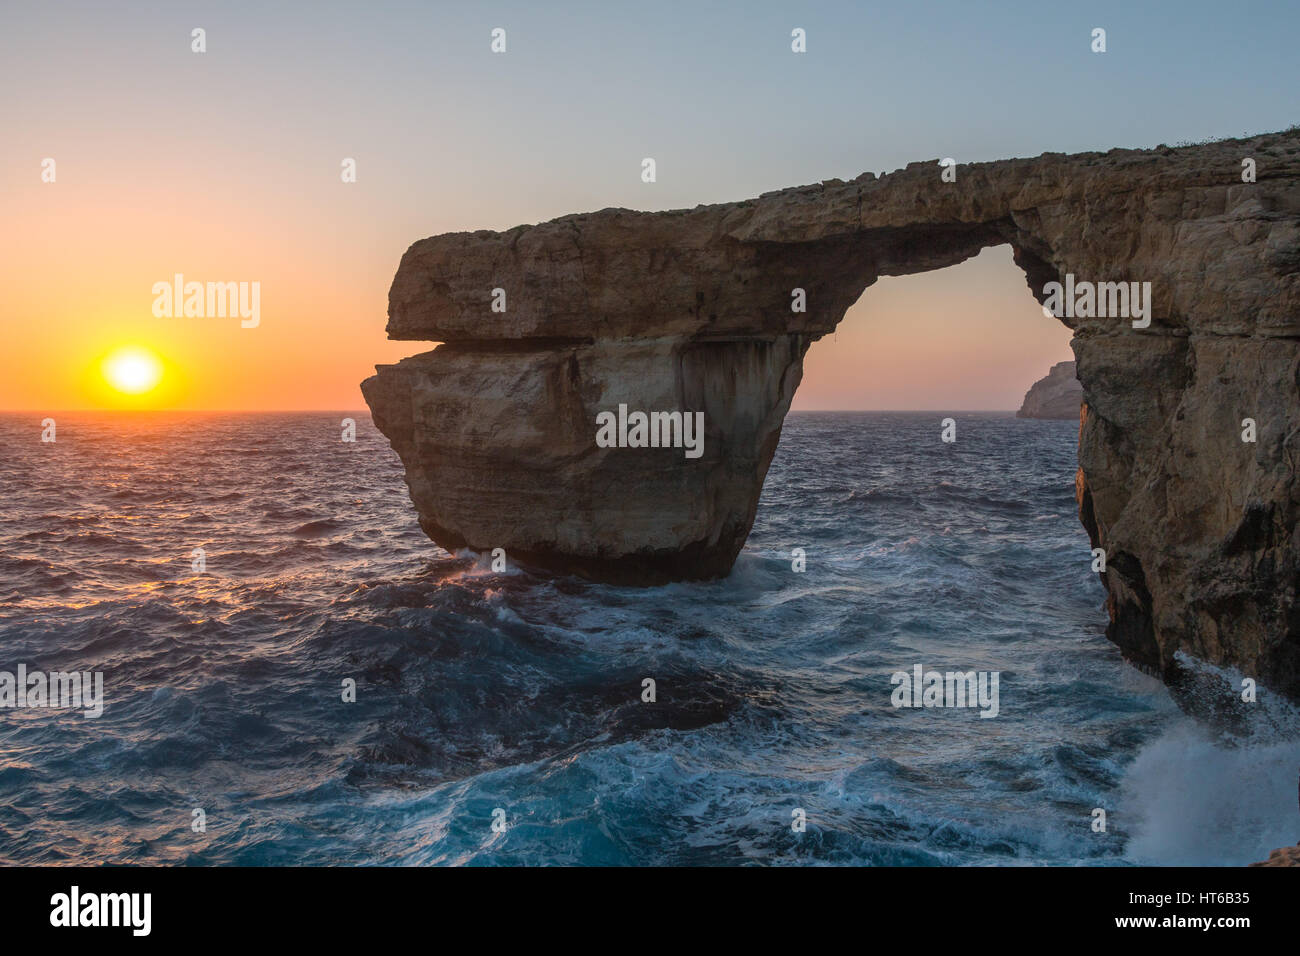 The Azure Window with waves at sunset on Gozo, Malta - Stock Image